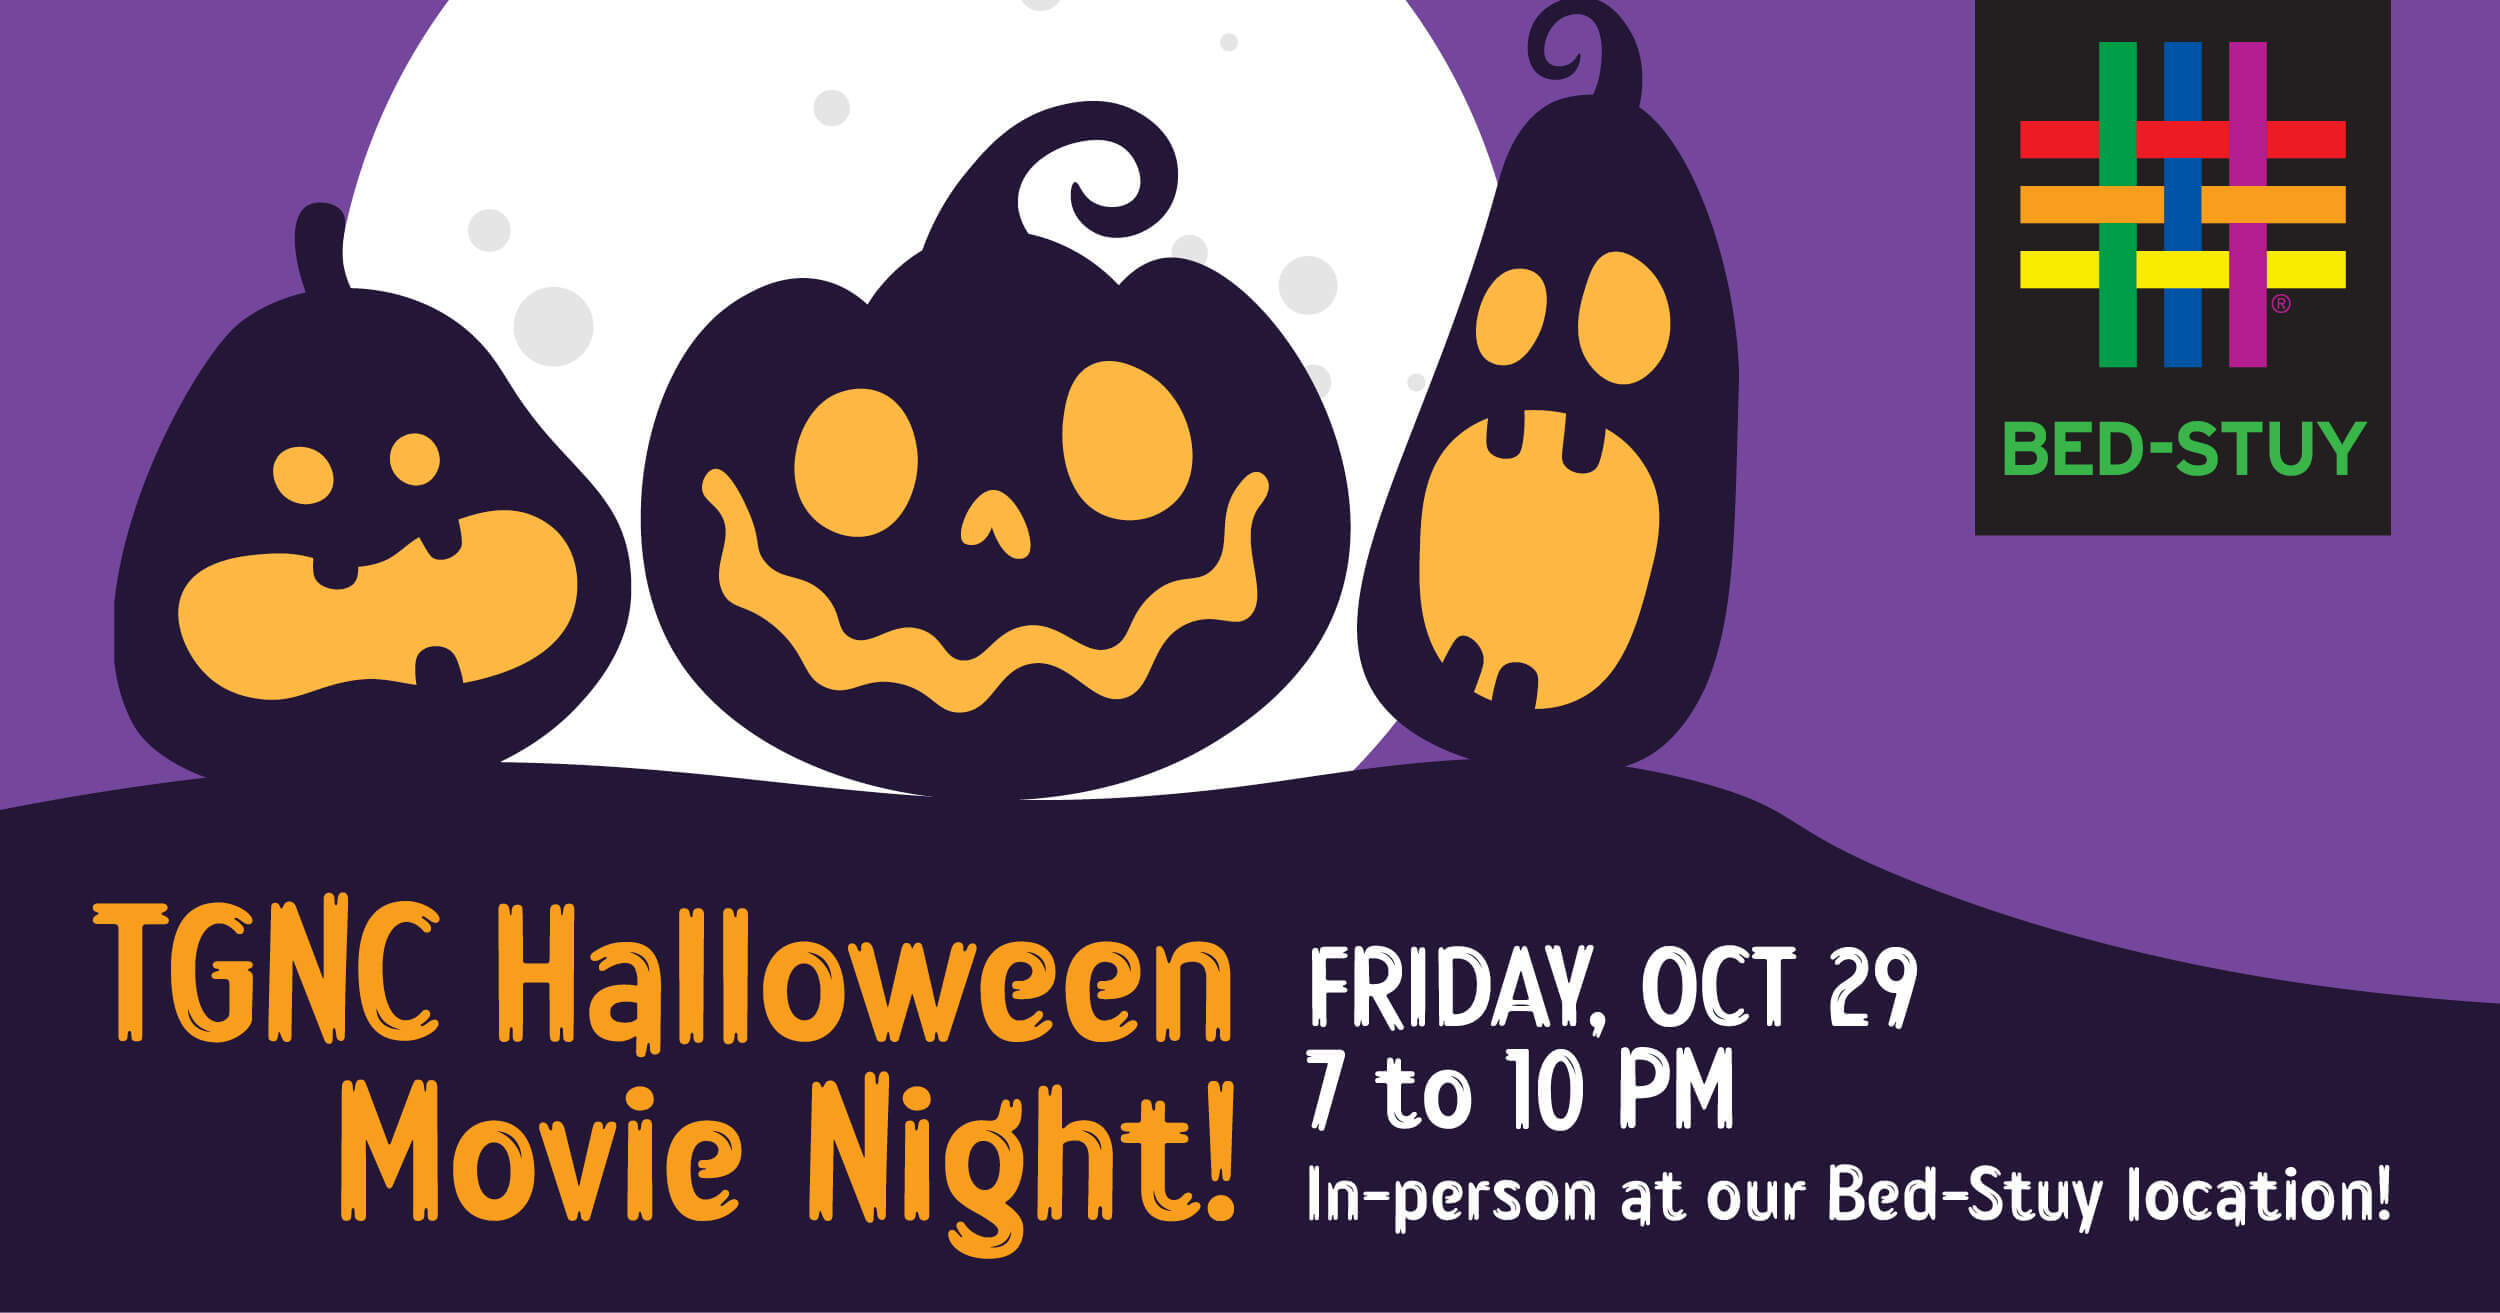 TGNC Halloween Movie Night at Brooklyn Community Pride Center in BED-STUY!